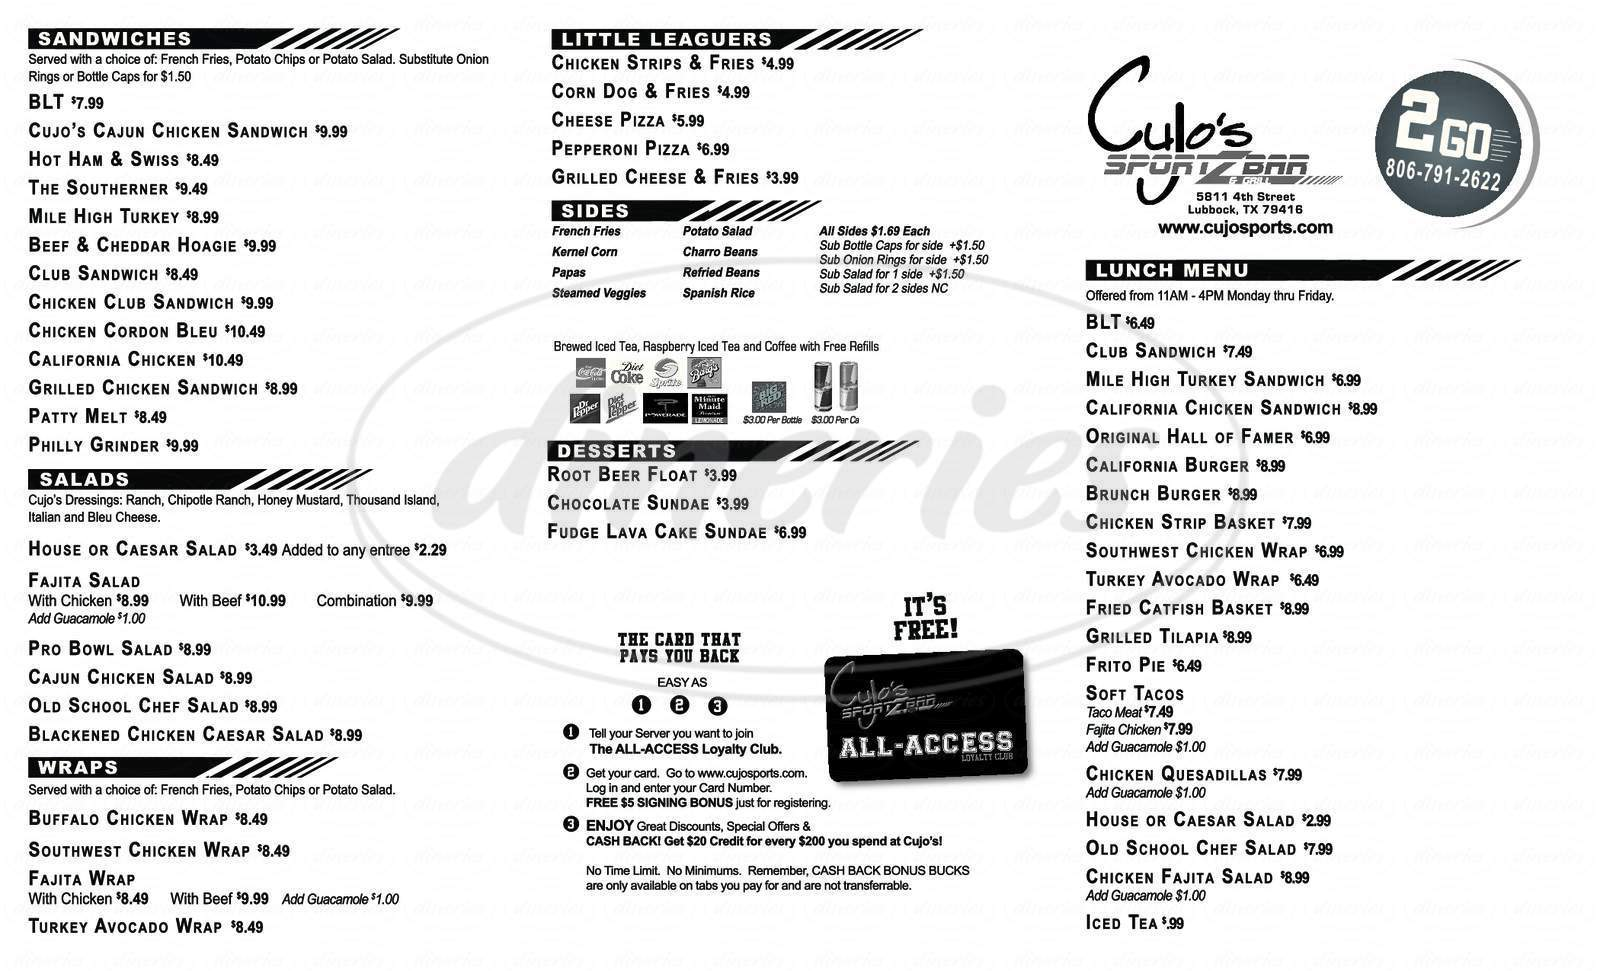 menu for Cujo's Sports Bar and Grill